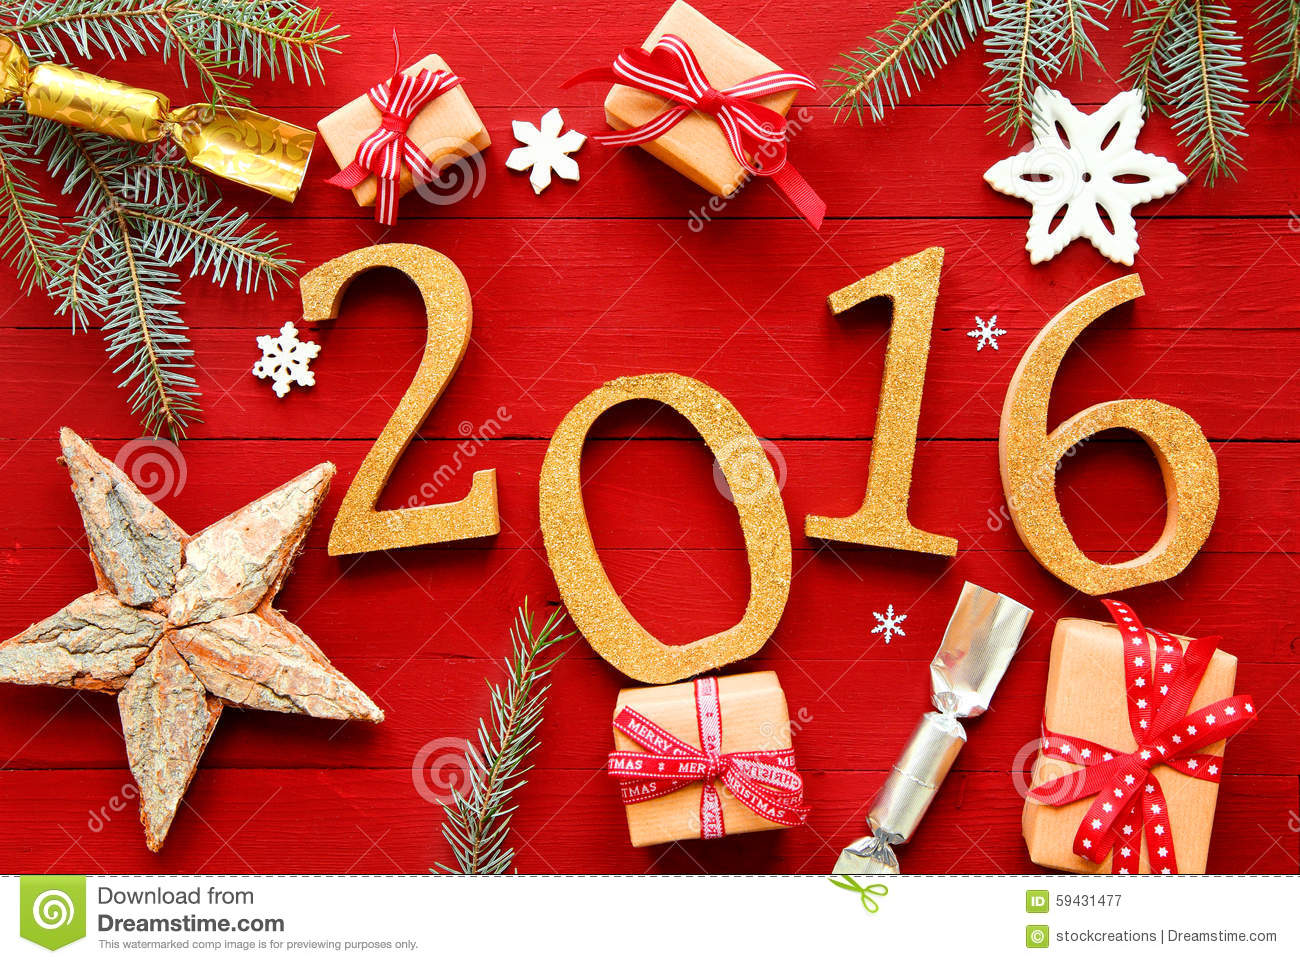 festive red 2016 new year background